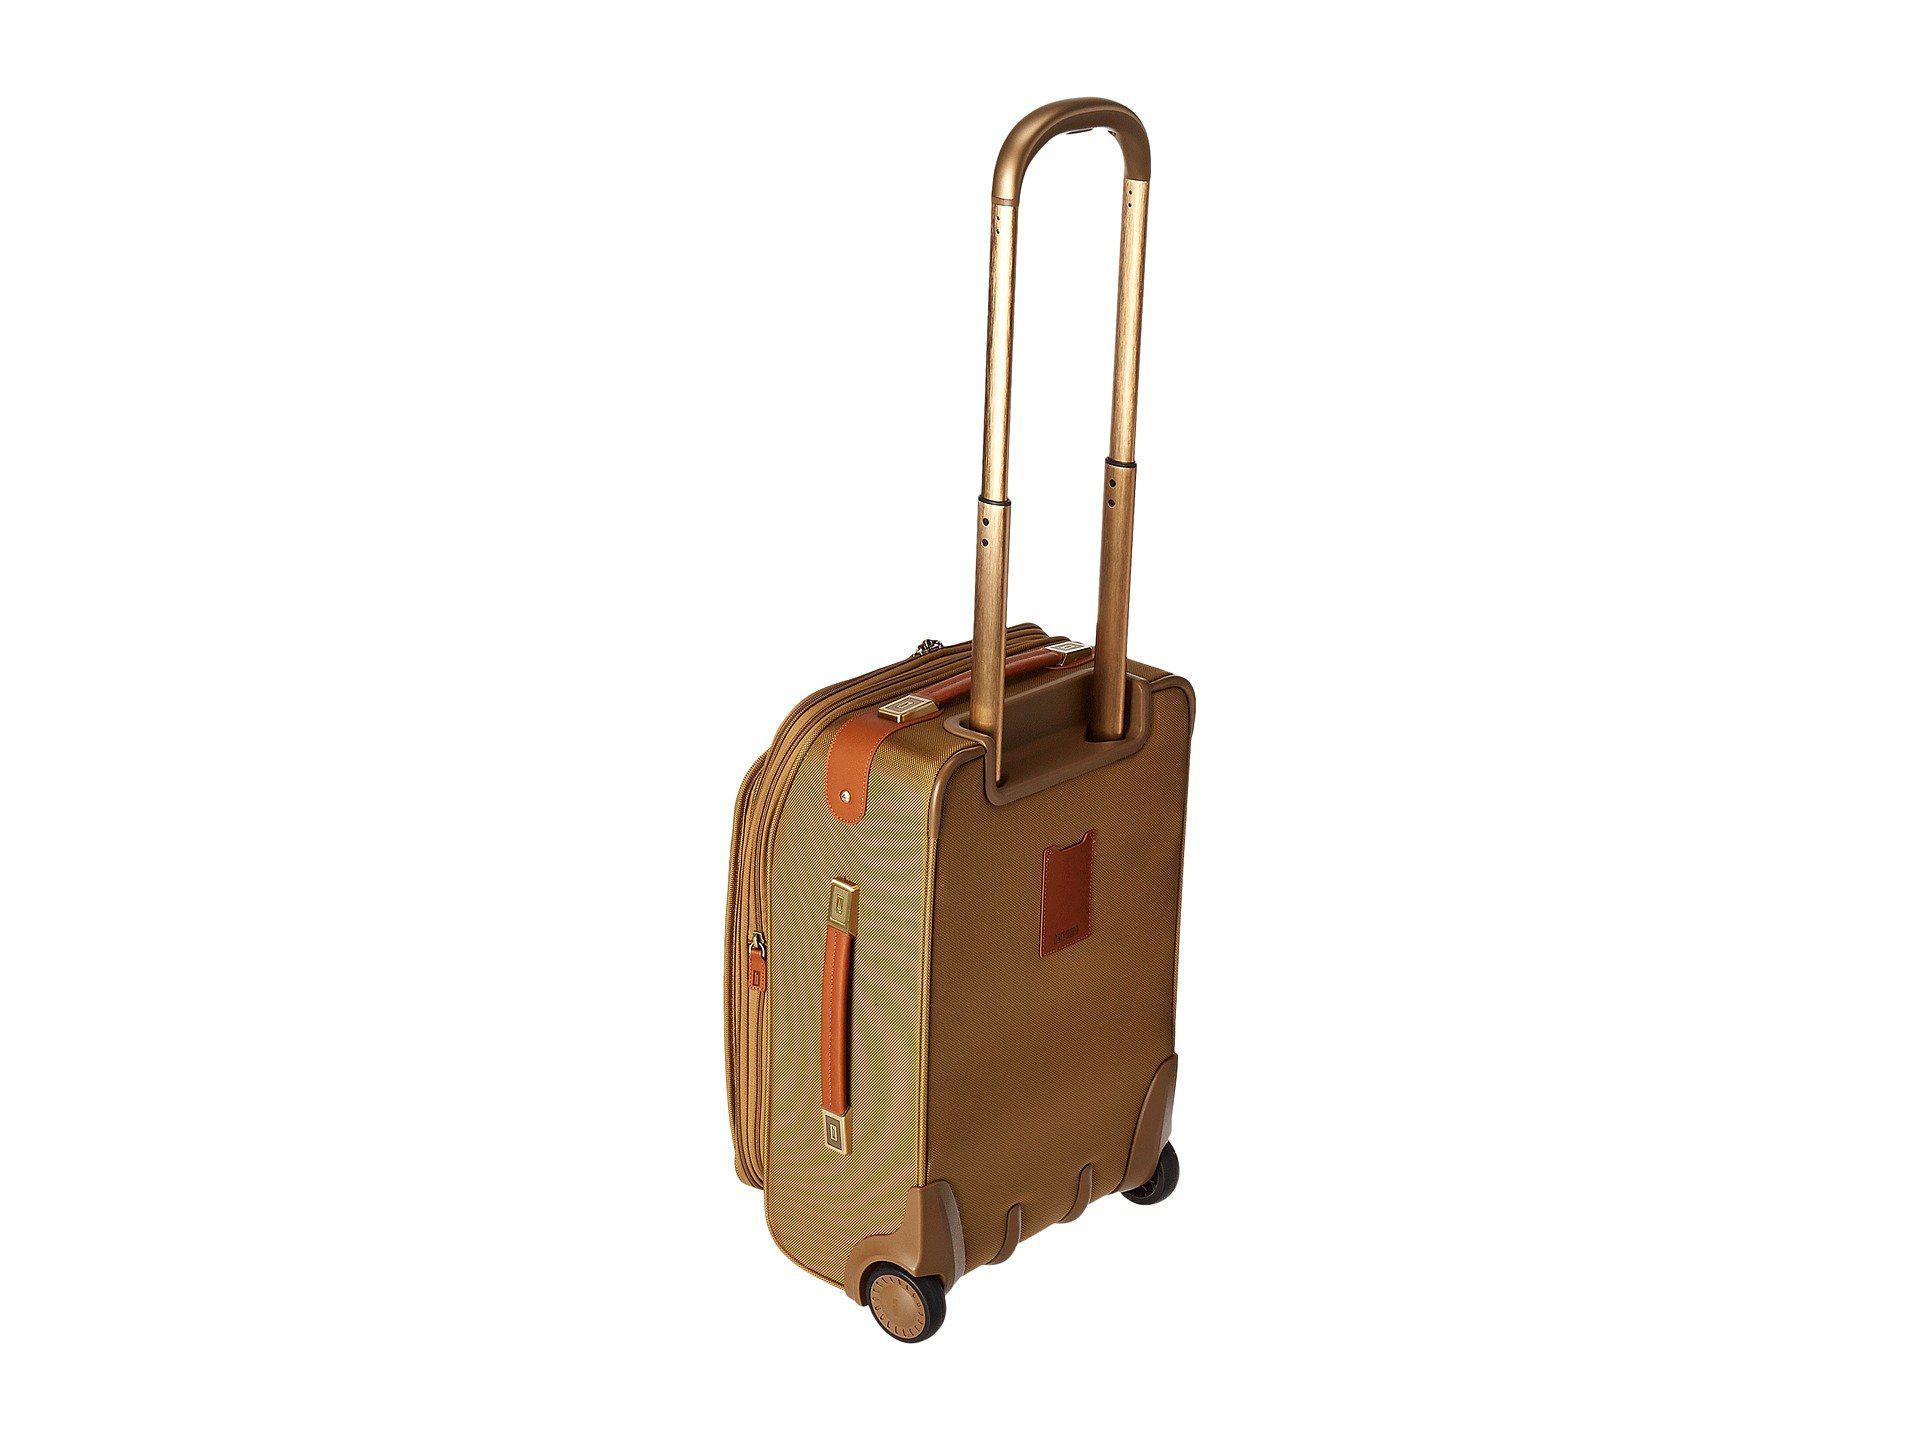 Lyst - Hartmann Ratio Classic Deluxe - Global Carry On Expandable ... bb7a3439254d5